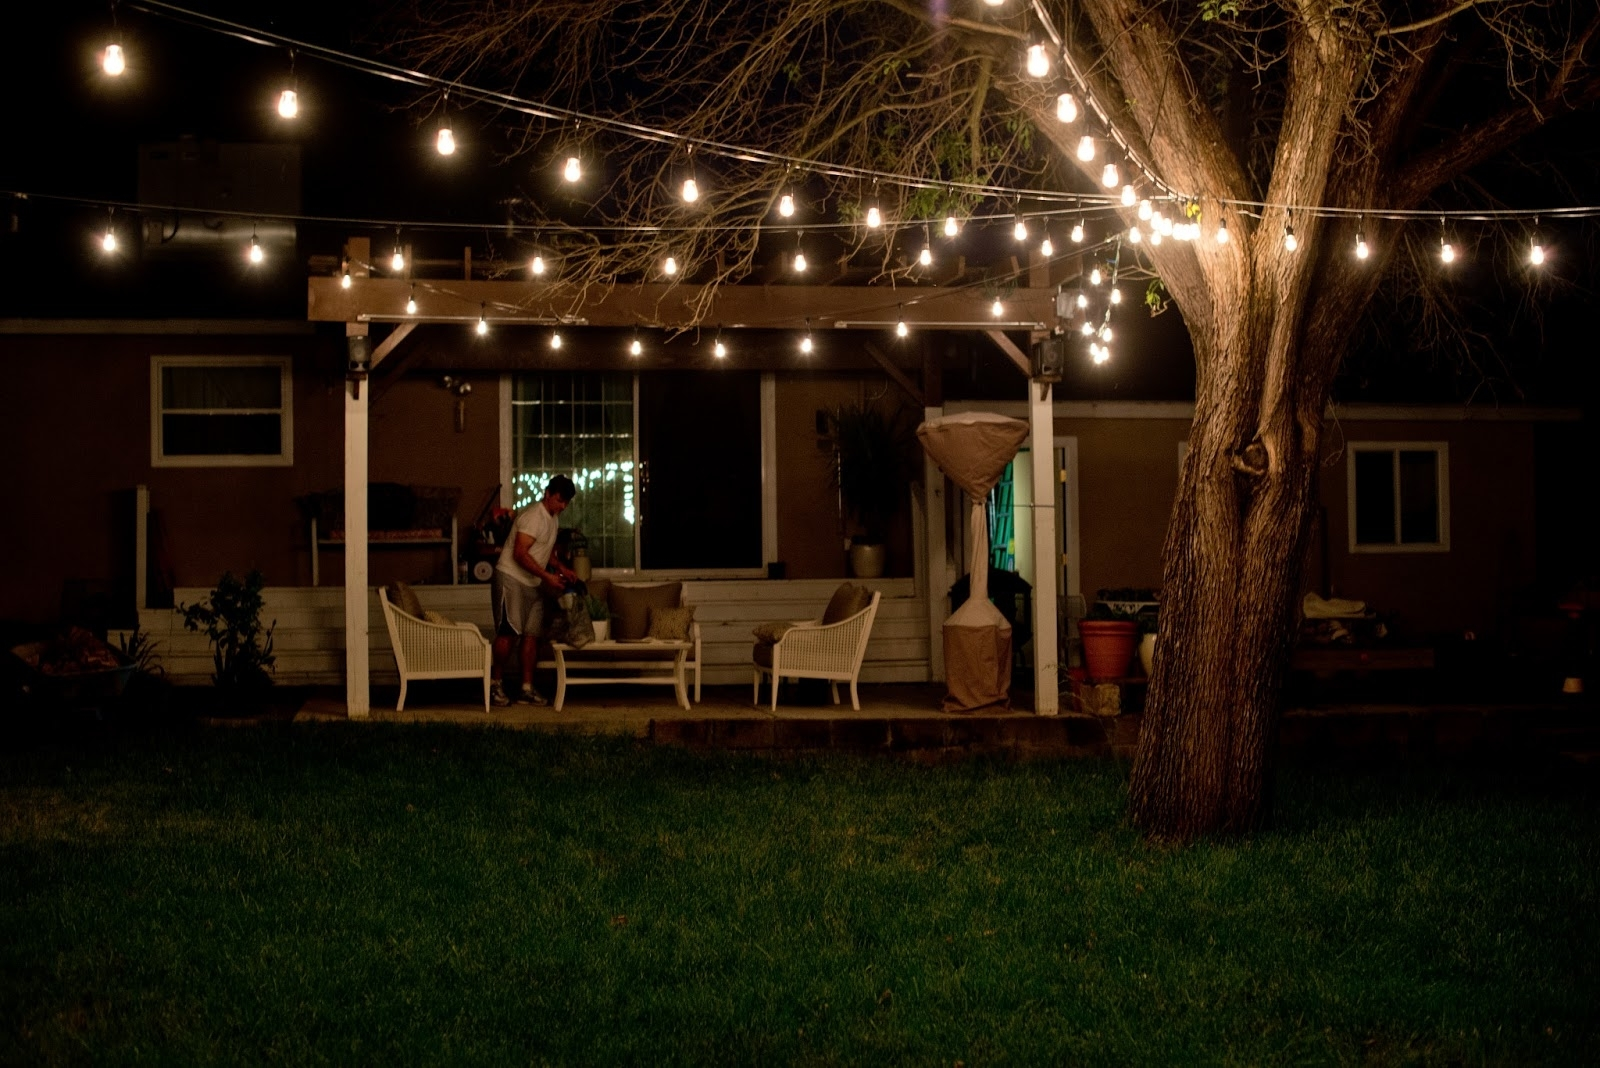 Incredible Hanging Patio Lights The Benefits Of Outdoor Patio Lights Pertaining To Solar Hanging Outdoor Patio Lights (#8 of 15)